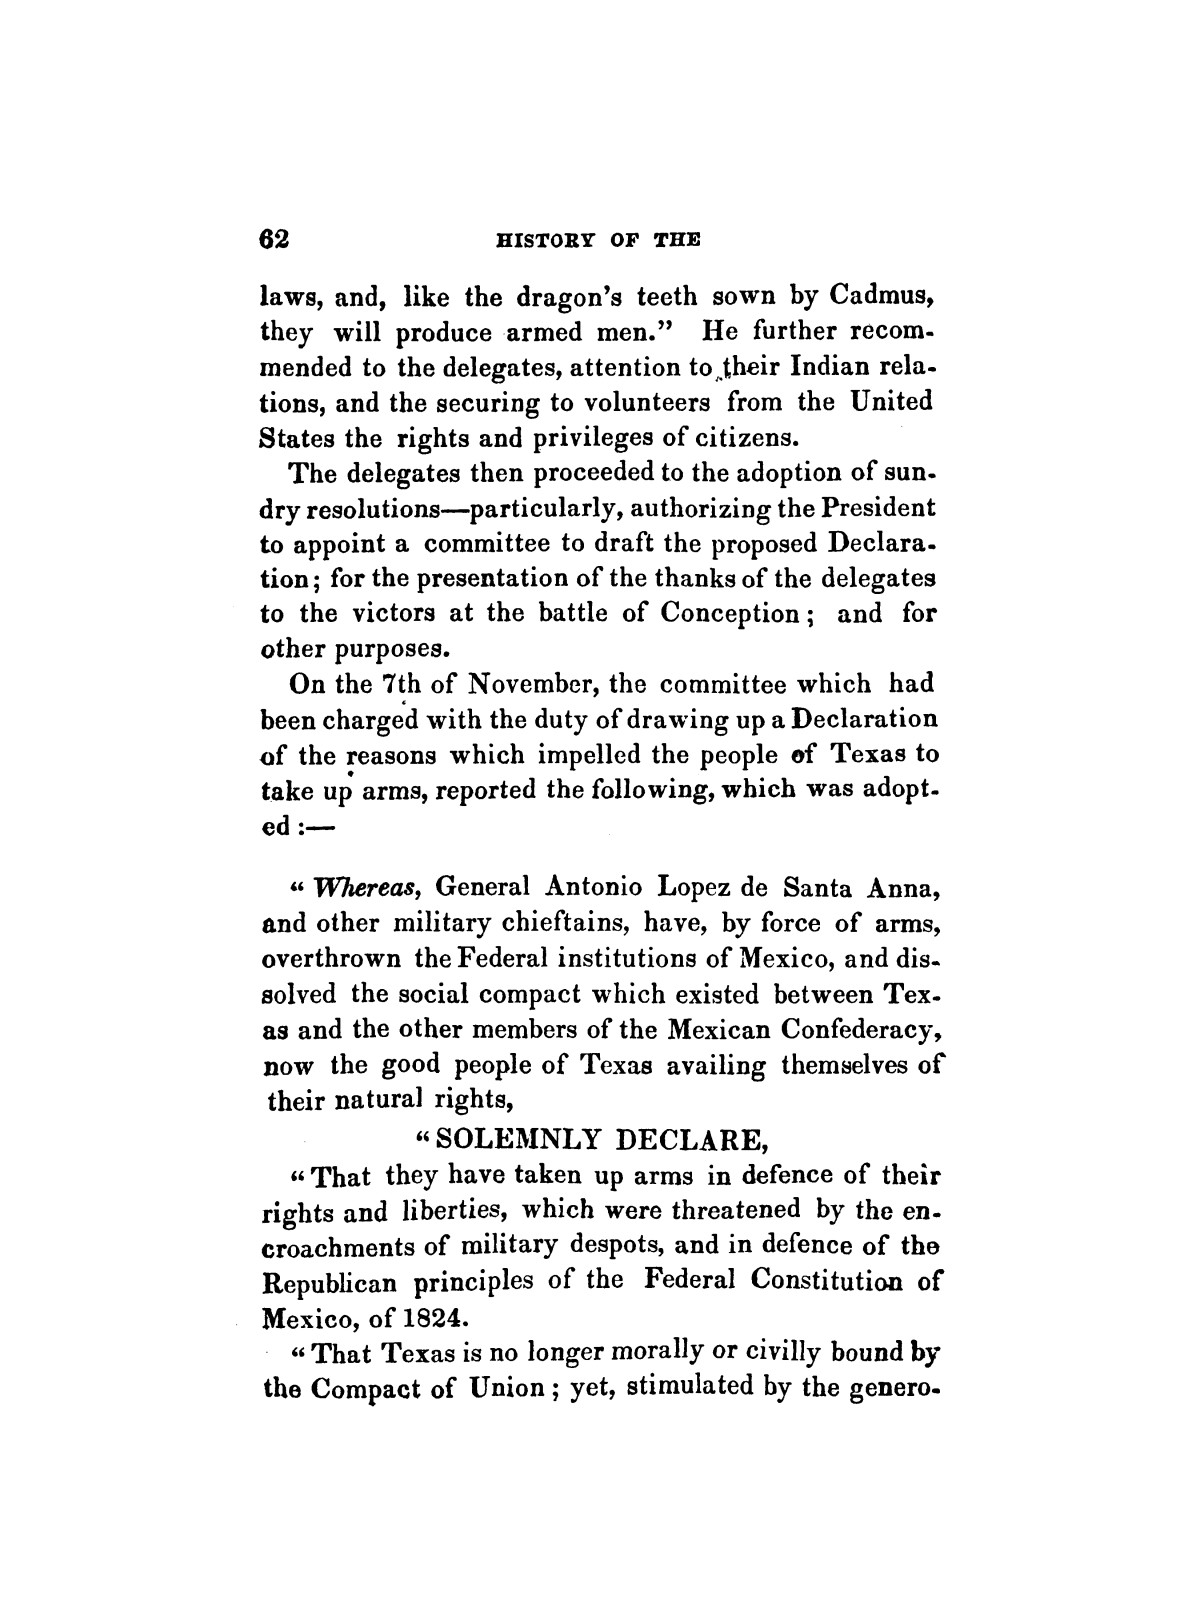 History of the revolution in Texas, particularly of the war of 1835 & '36; together with the latest geographical, topographical, and statistical accounts of the country, from the most authentic sources. Also, an appendix. By the Rev. C. Newell.                                                                                                      [Sequence #]: 74 of 227